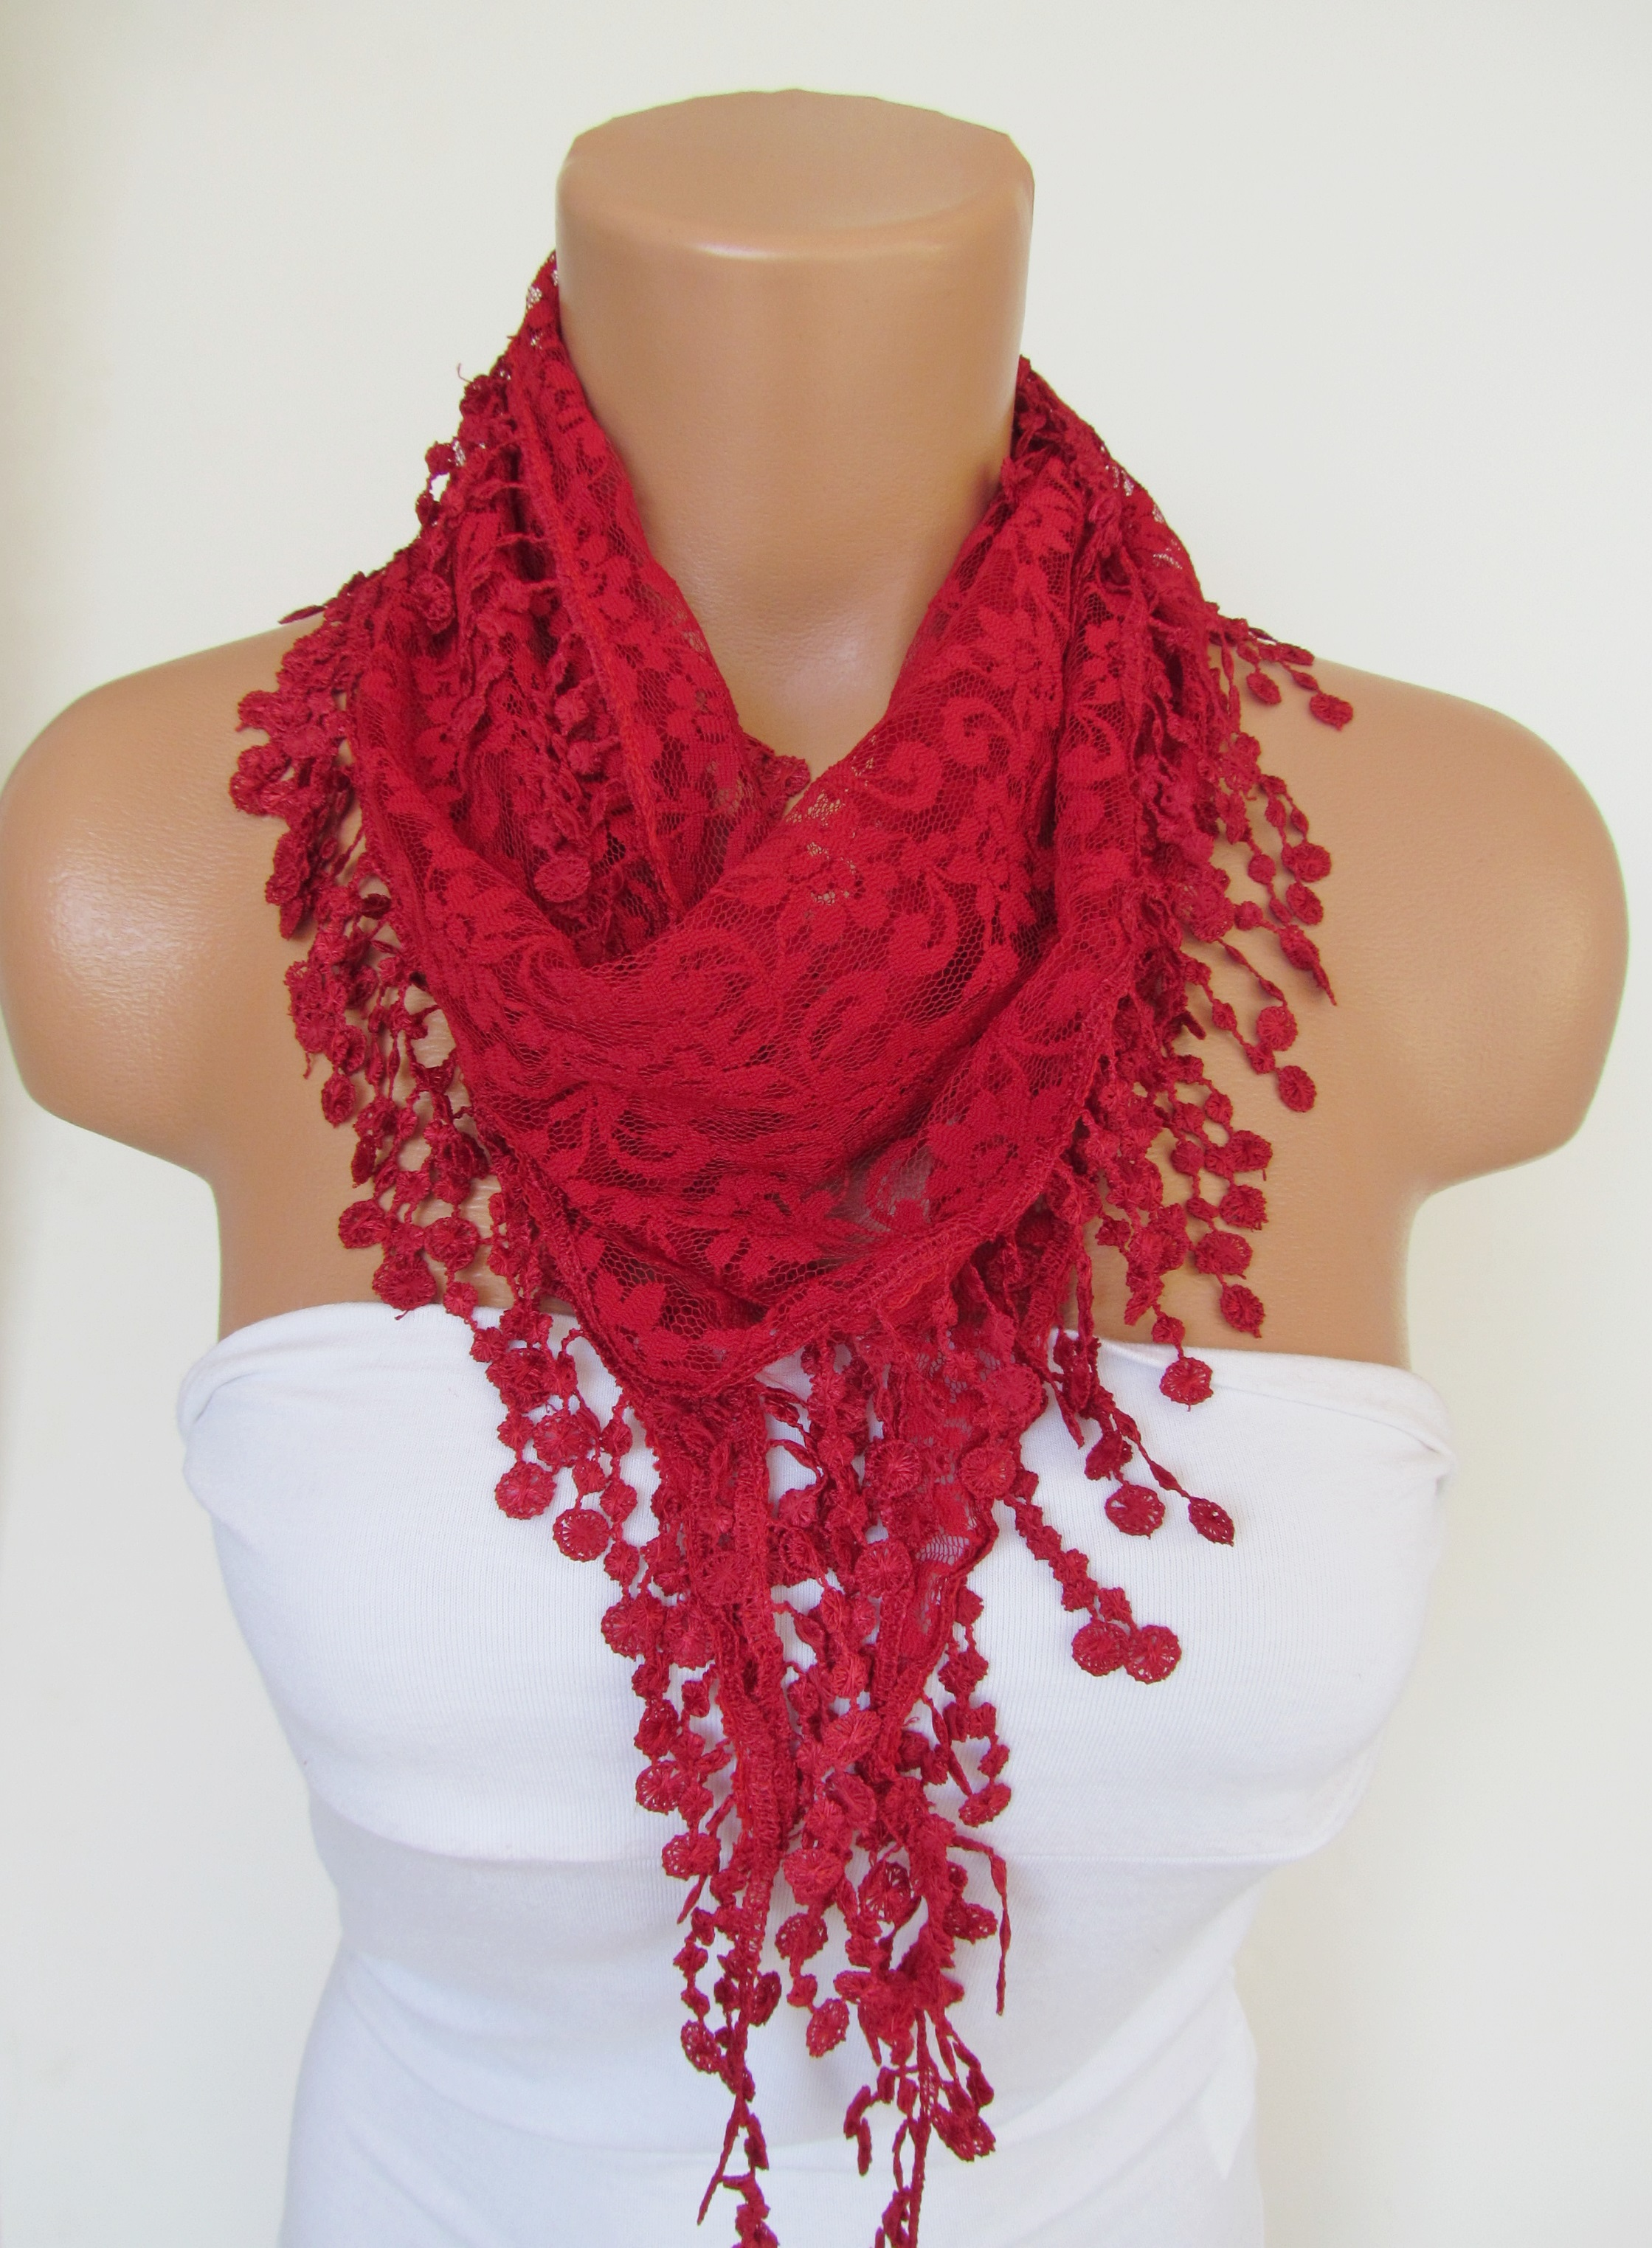 1c3cbee2c5035 Red Long Scarf With Fringe-Winter Fashion Scarf-Headband-Necklace- Infinity  Scarf- Winter Accessory- on Luulla